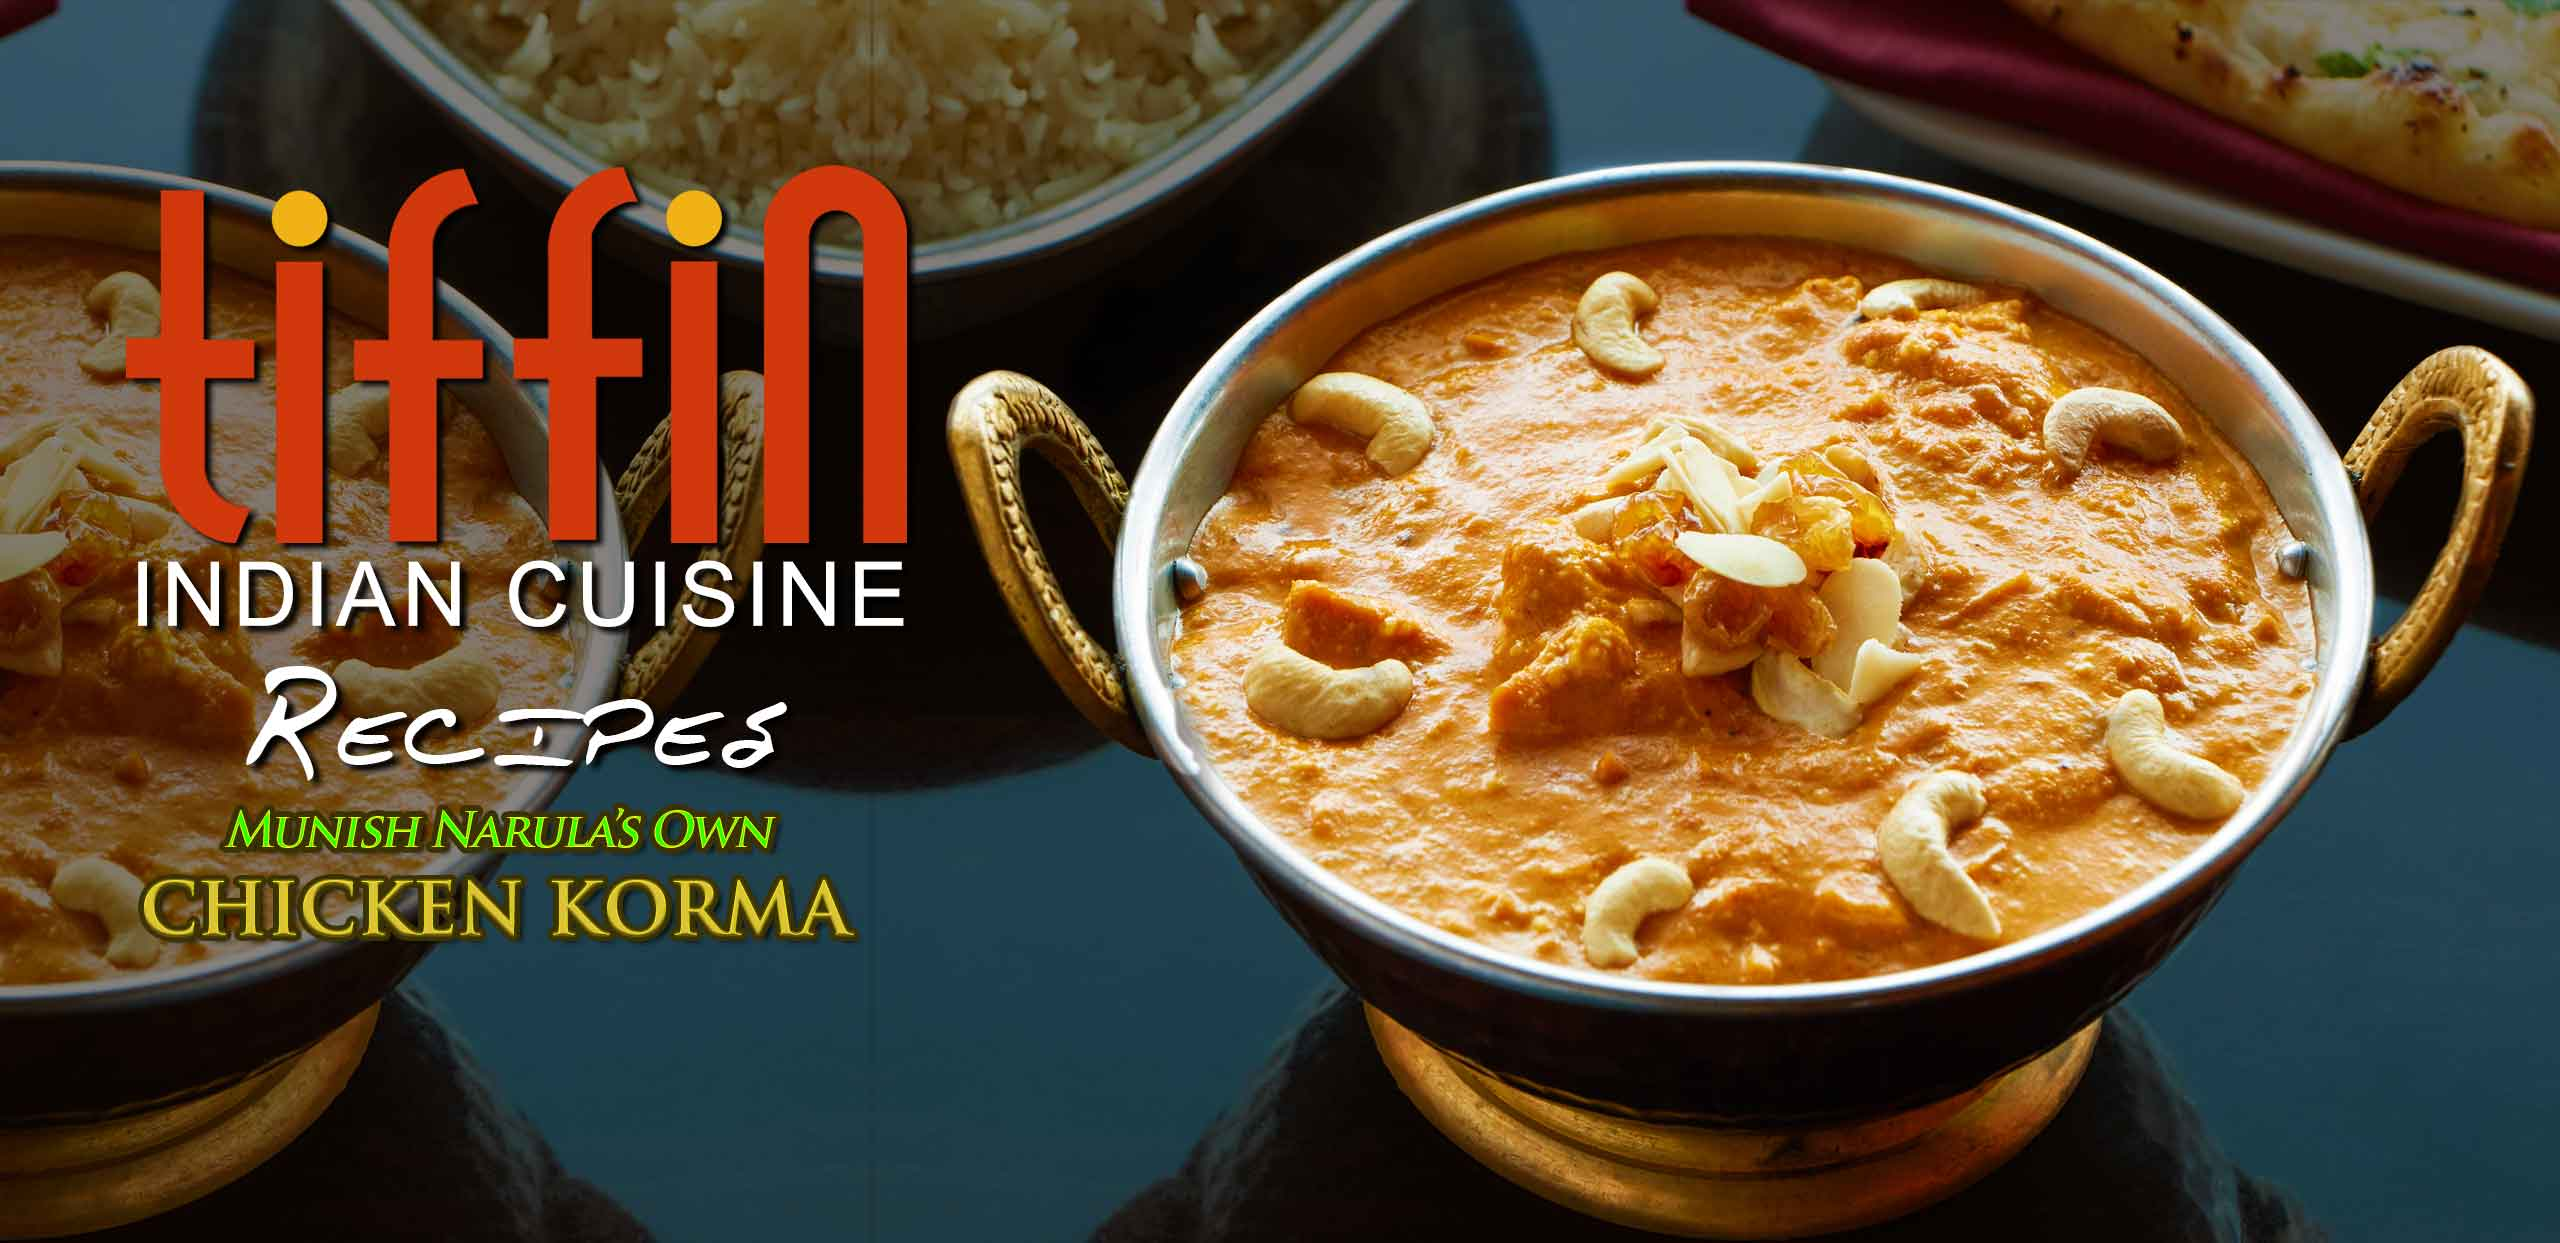 Indian Restaurant Mt Airy Chestnut Hill Elkins Park Tiffin Indian Cuisine Recipe How to Make your own Chicken Korma at home. Montgomery County PA